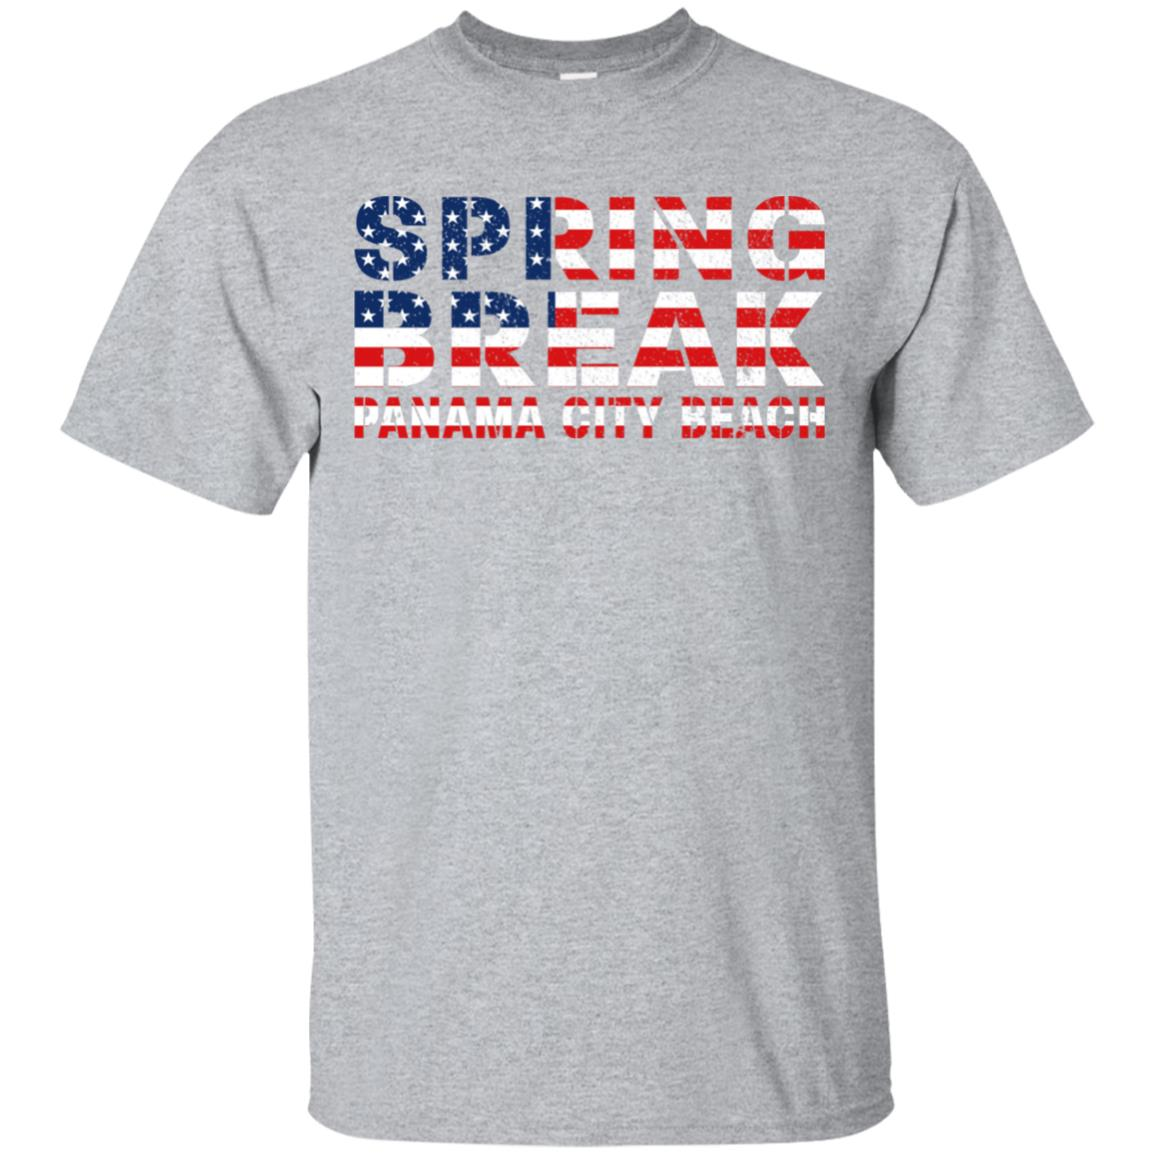 Spring Break Panama City Beach Us Flag d Unisex Short Sleeve